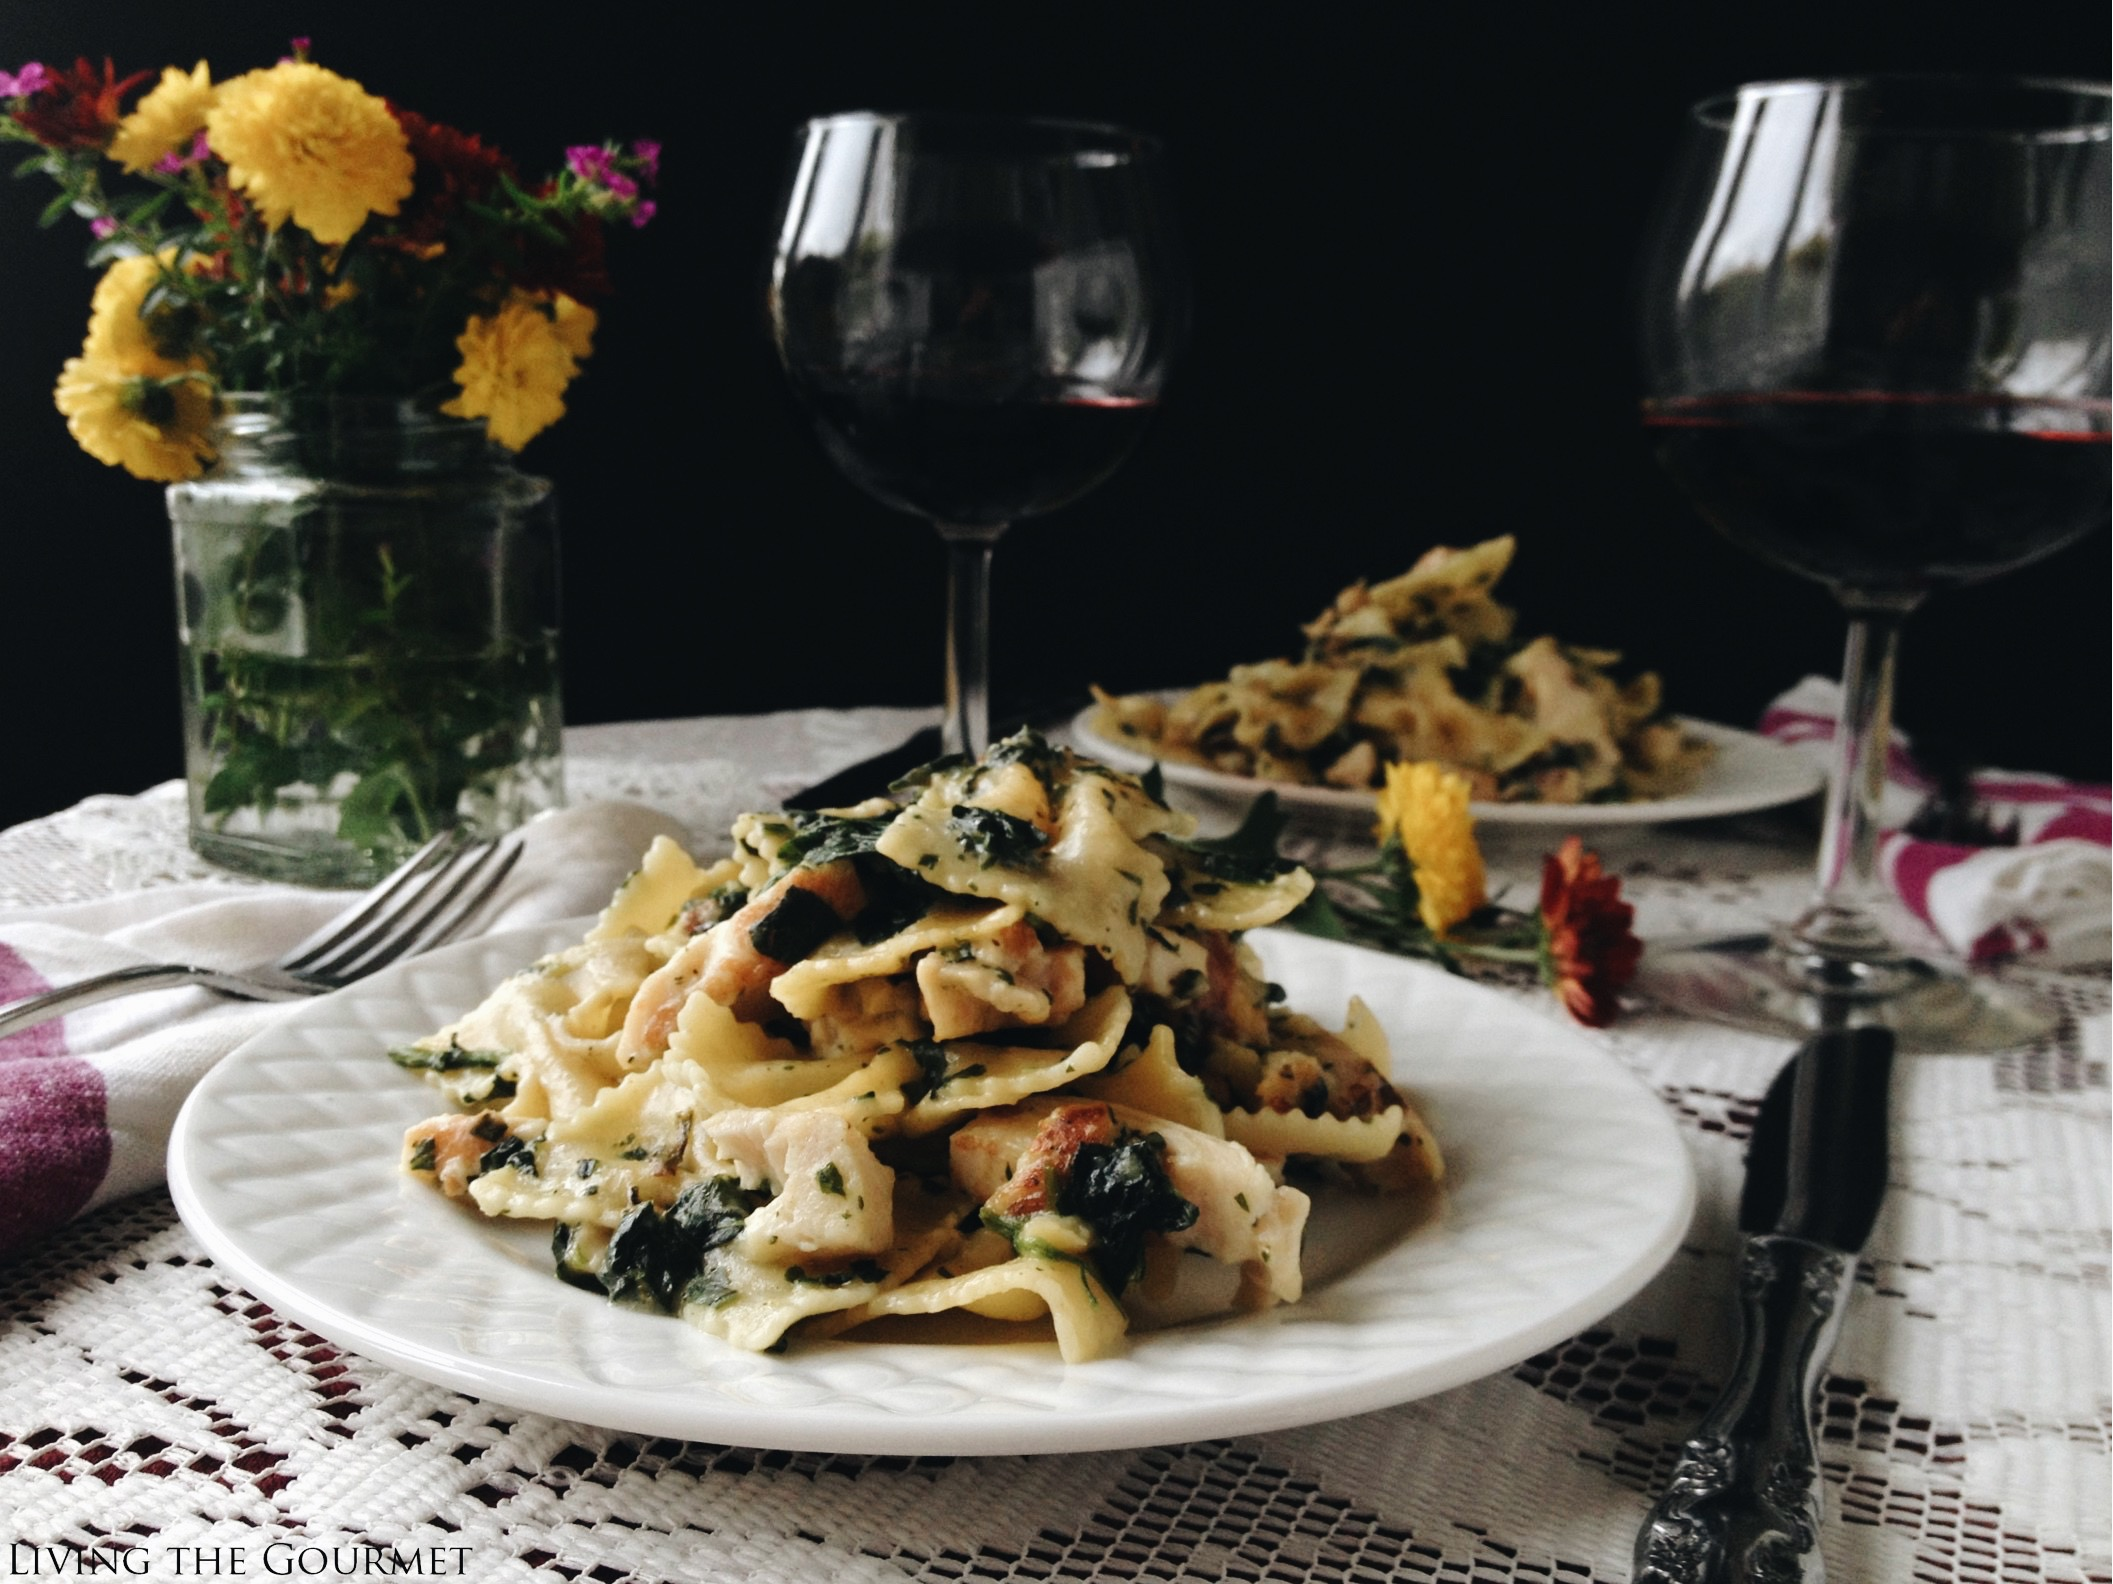 Living the Gourmet: Chicken Florentine & Farfalle for Two | #ManigaMoment